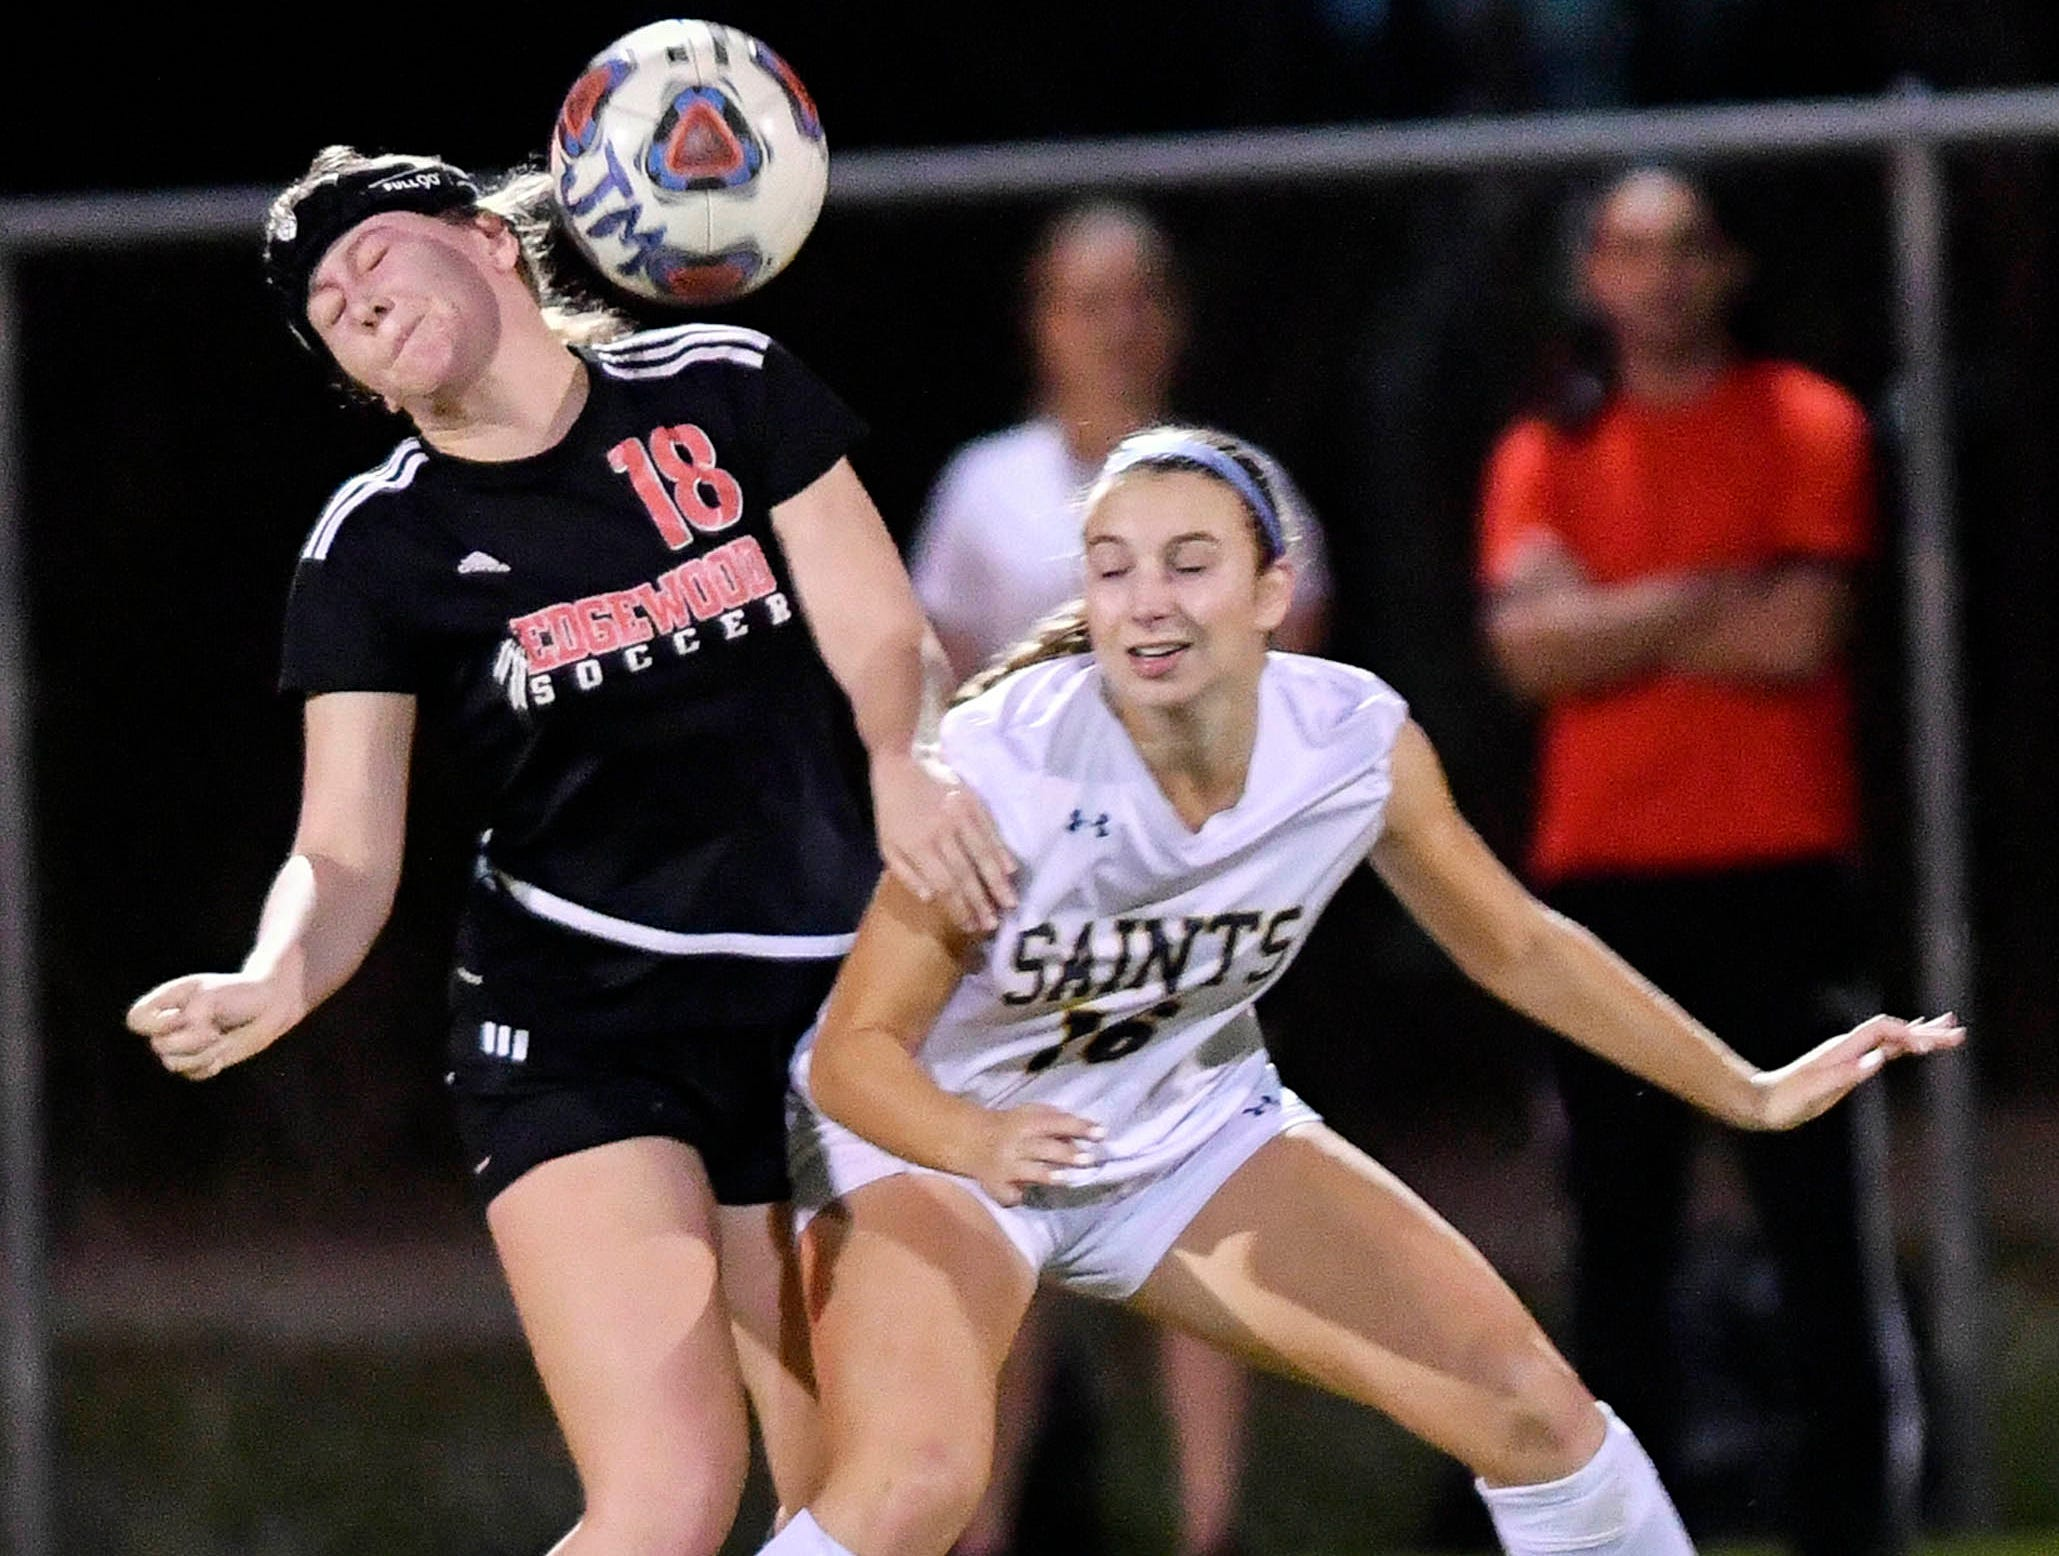 Edgewood's Shea Smithson (18) and Phoebe Fowler of Trinity Prep go for the same ball during Friday's Class 2A regional soccer semifinal.